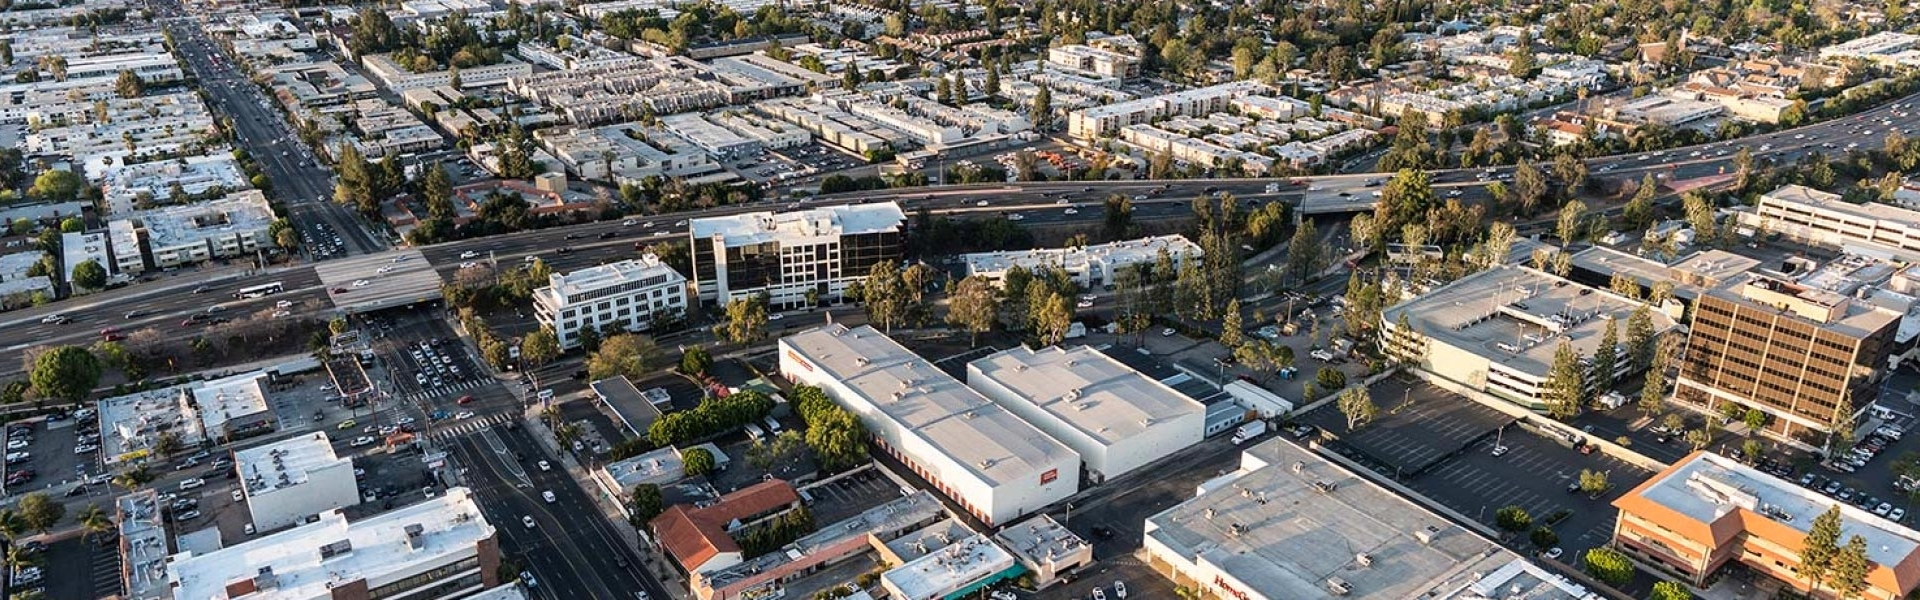 Aerial Photo of the San Fernando Valley With Lots of Commercial Buildings